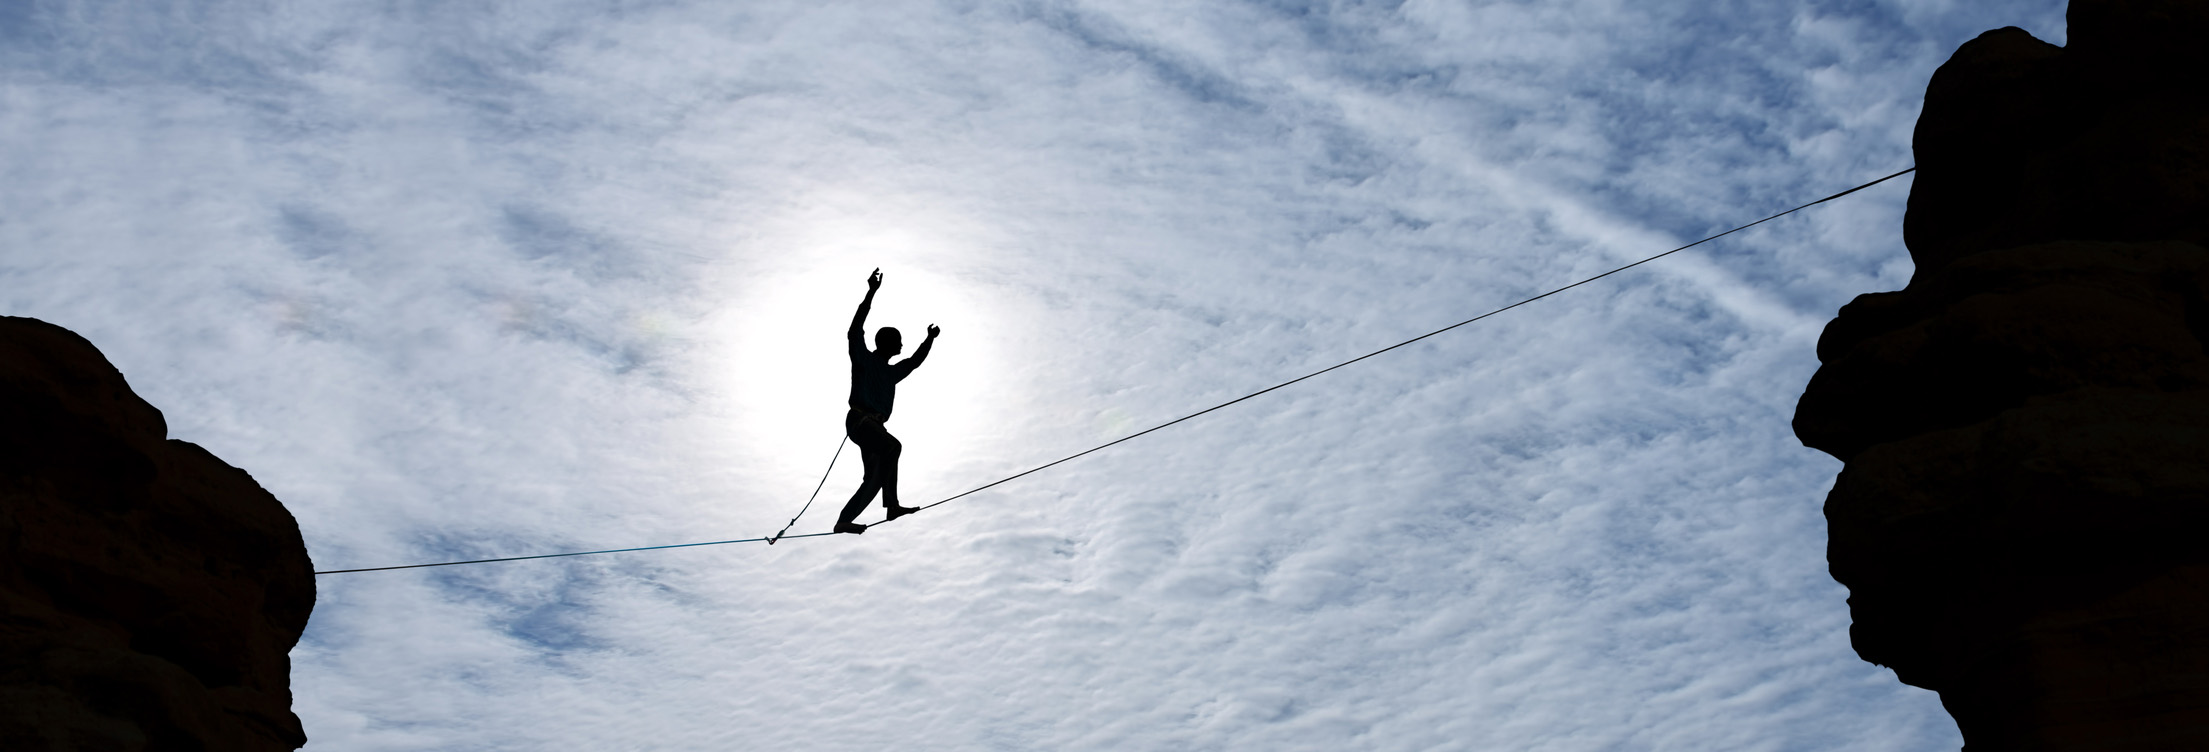 an upward shot of a person tight rope walking over a canyon